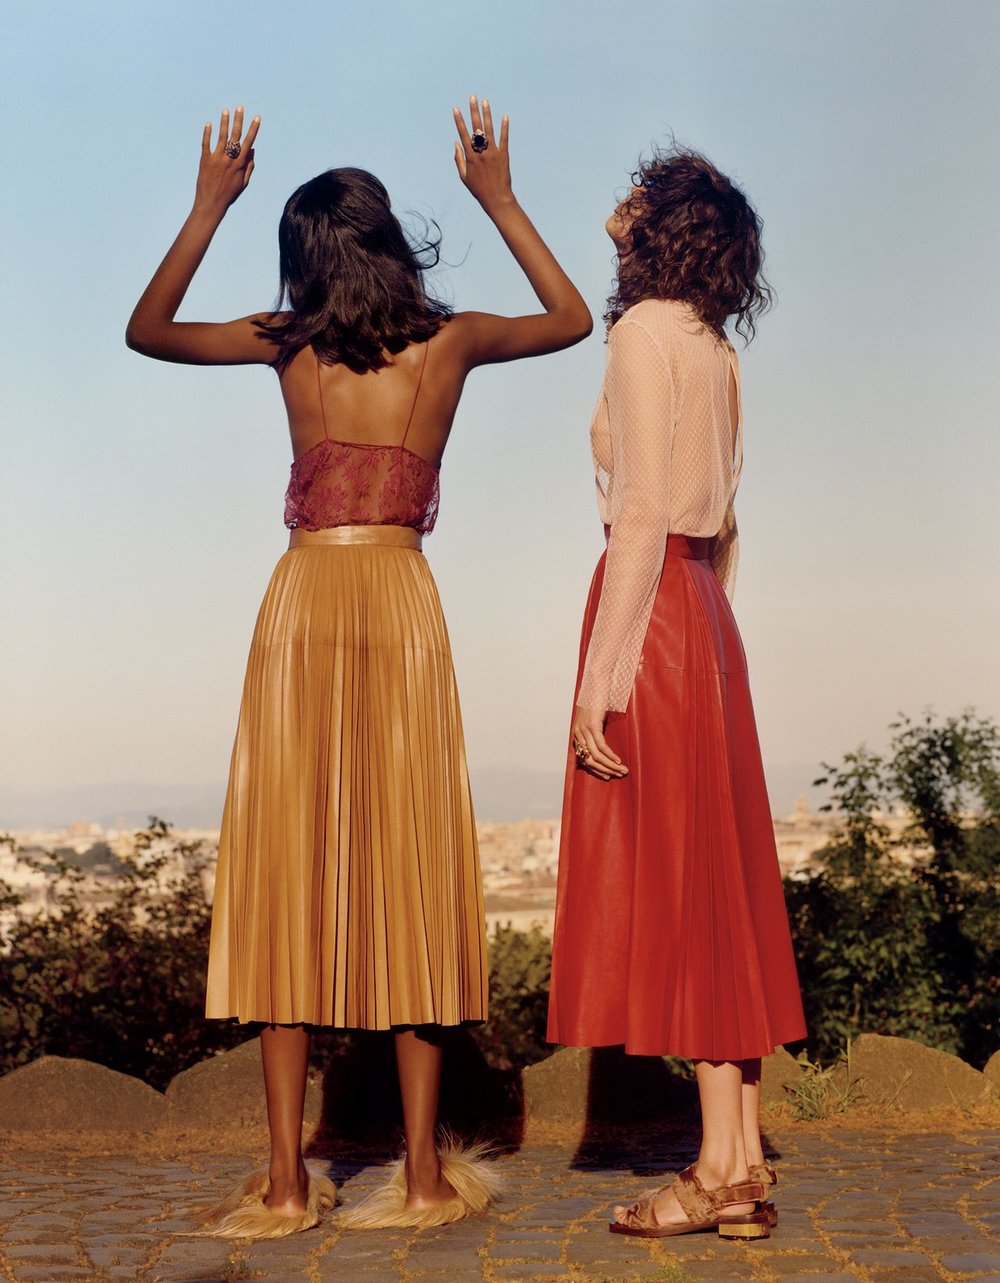 Gucci Jamie Hawkesworth Vogue